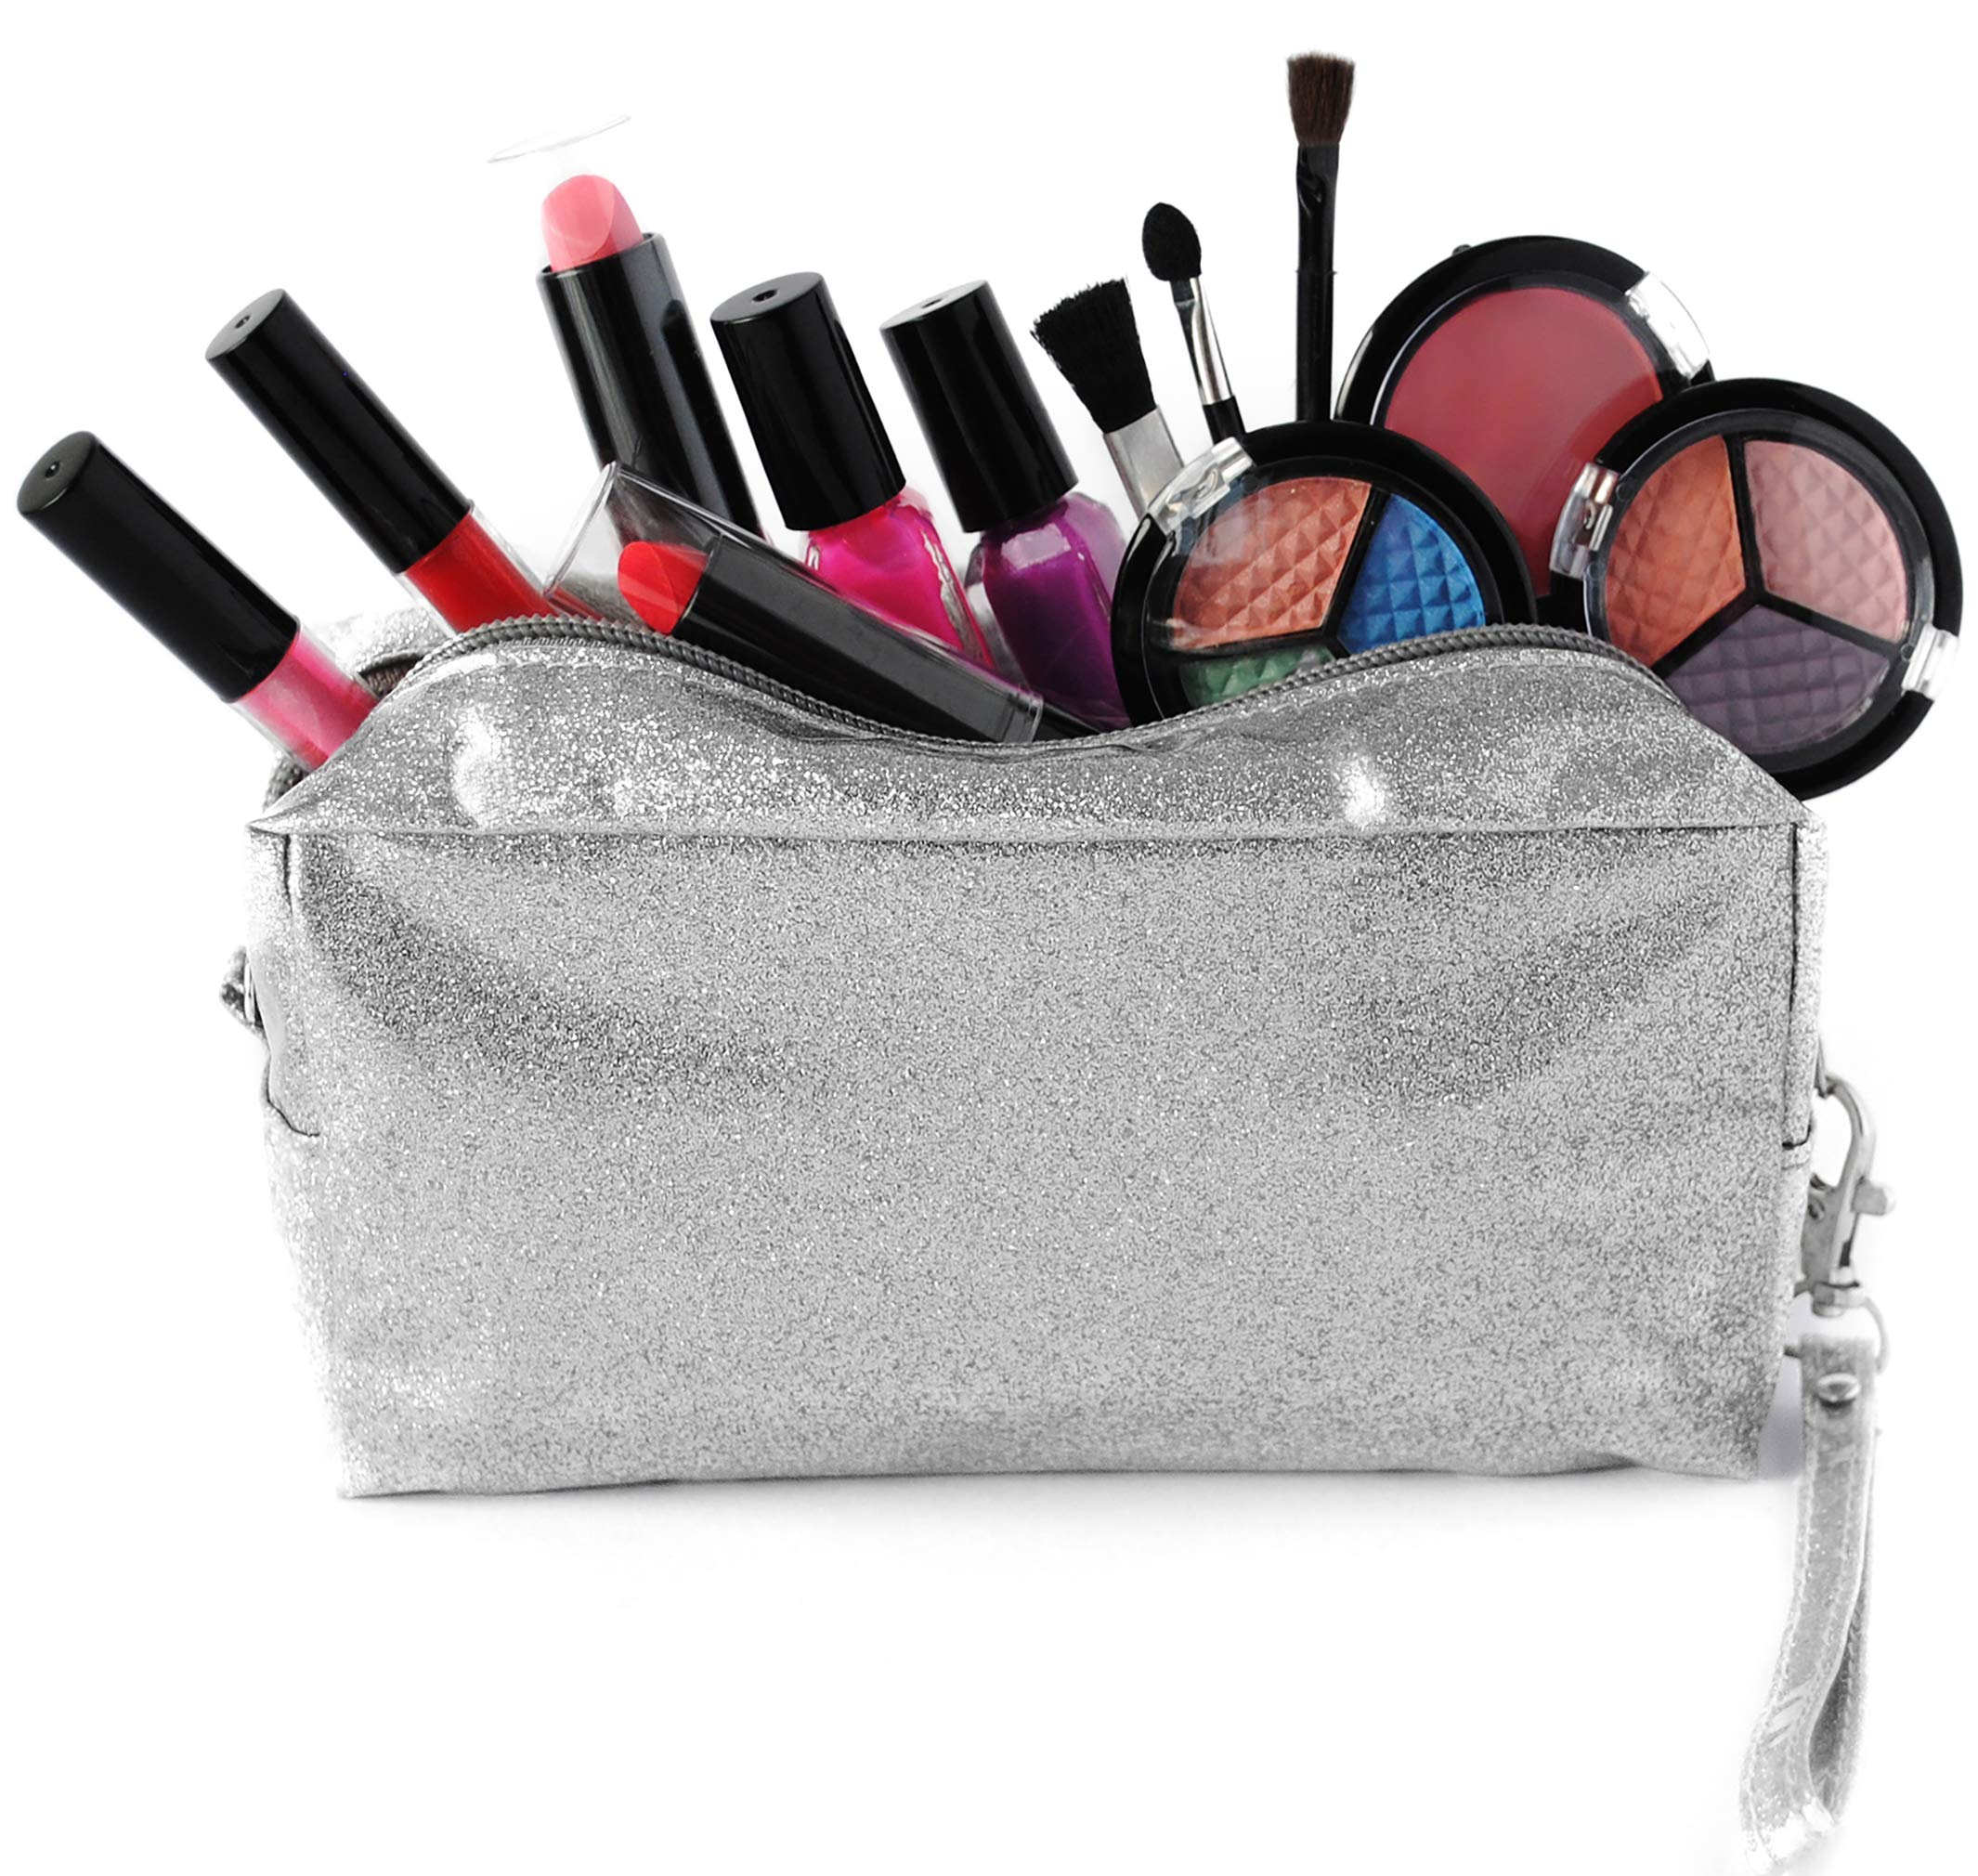 SmartEmily Girls Toys - Kids Makeup kit for Girl with Glitter Cosmetic Bag, Perfect Play Makeup for Girls and Teens, Washable and Non Toxic, Real Make up Set, Best Birthday Gifts for Girls, Silver by SmartEmily